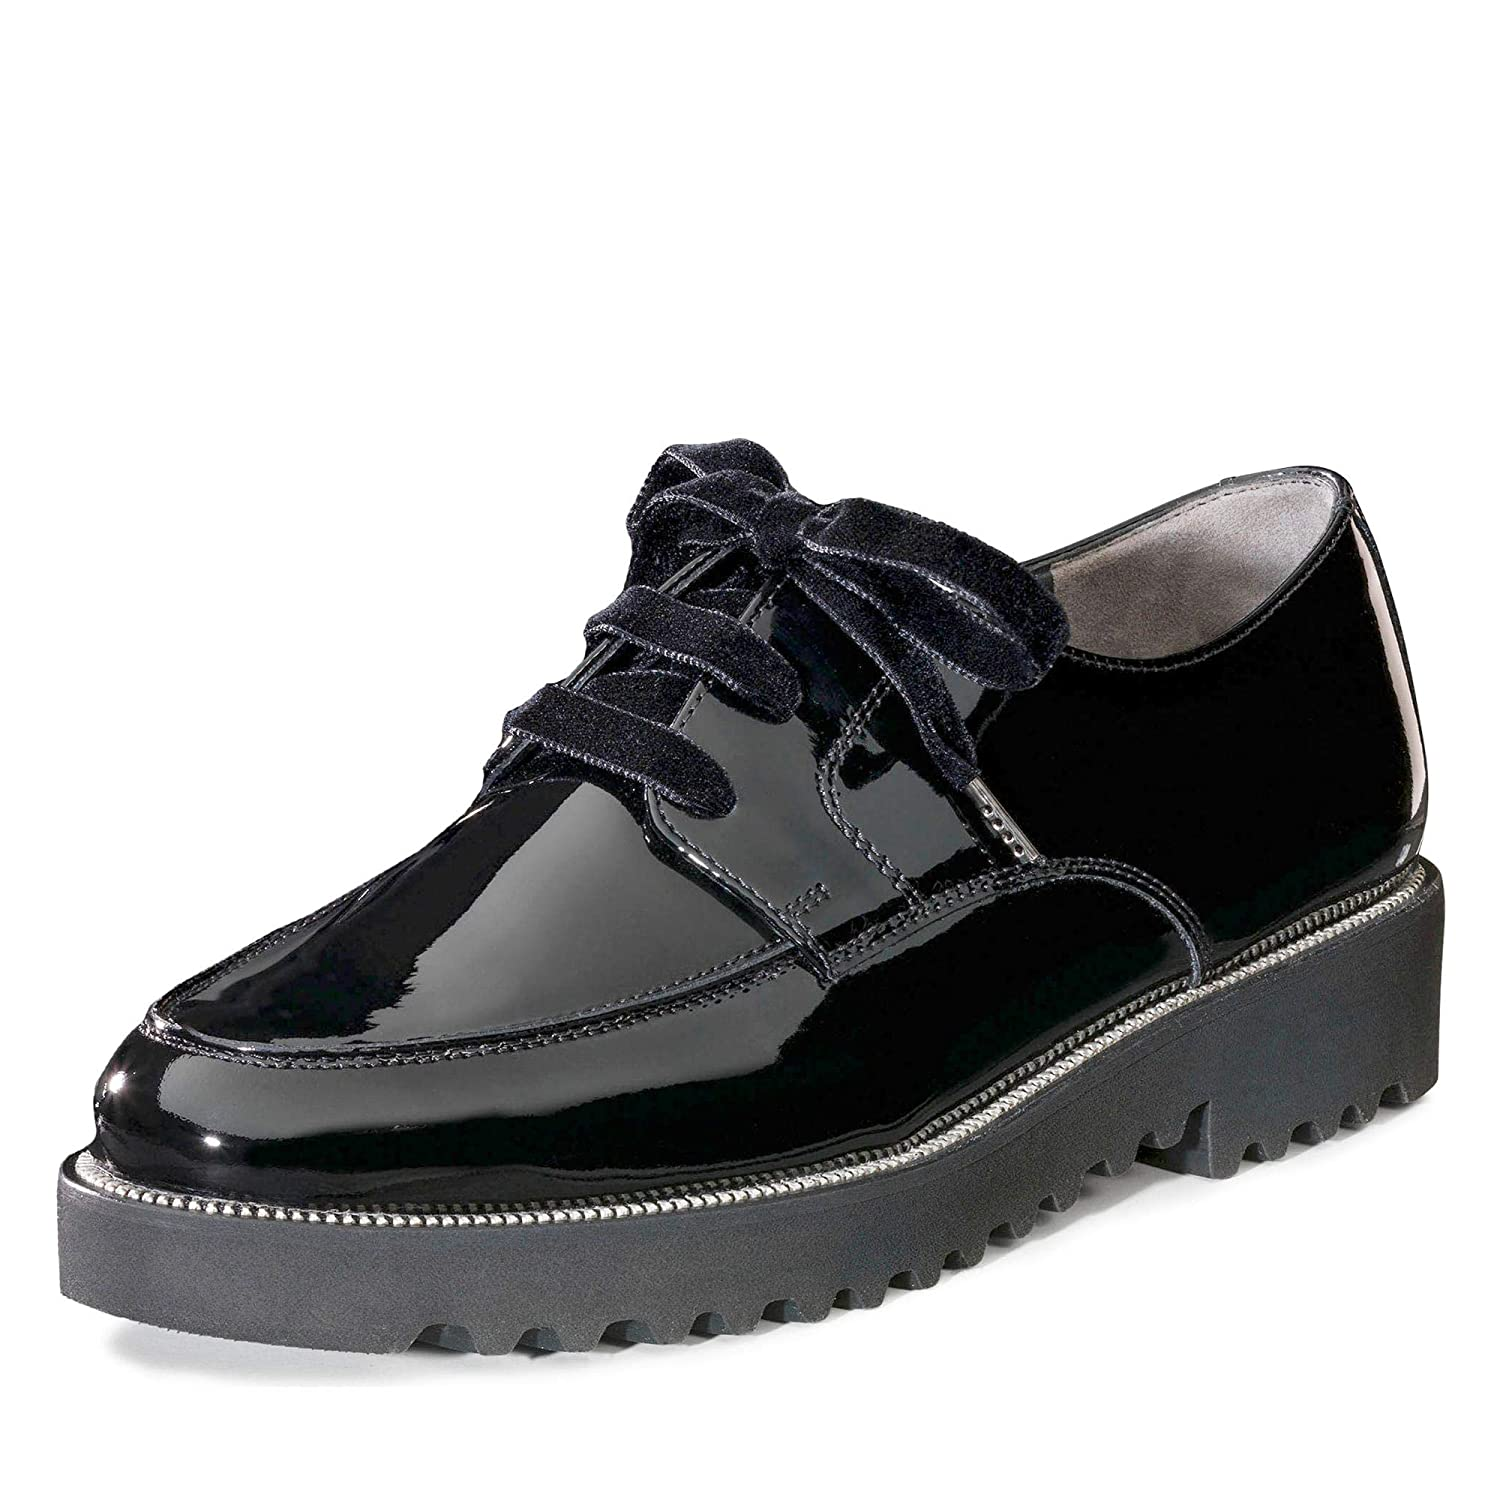 2629 PAUL Noir LOAFER GREEN CHUNKY LOAFER 2629 Noir 0ef7bcc - fast-weightloss-diet.space